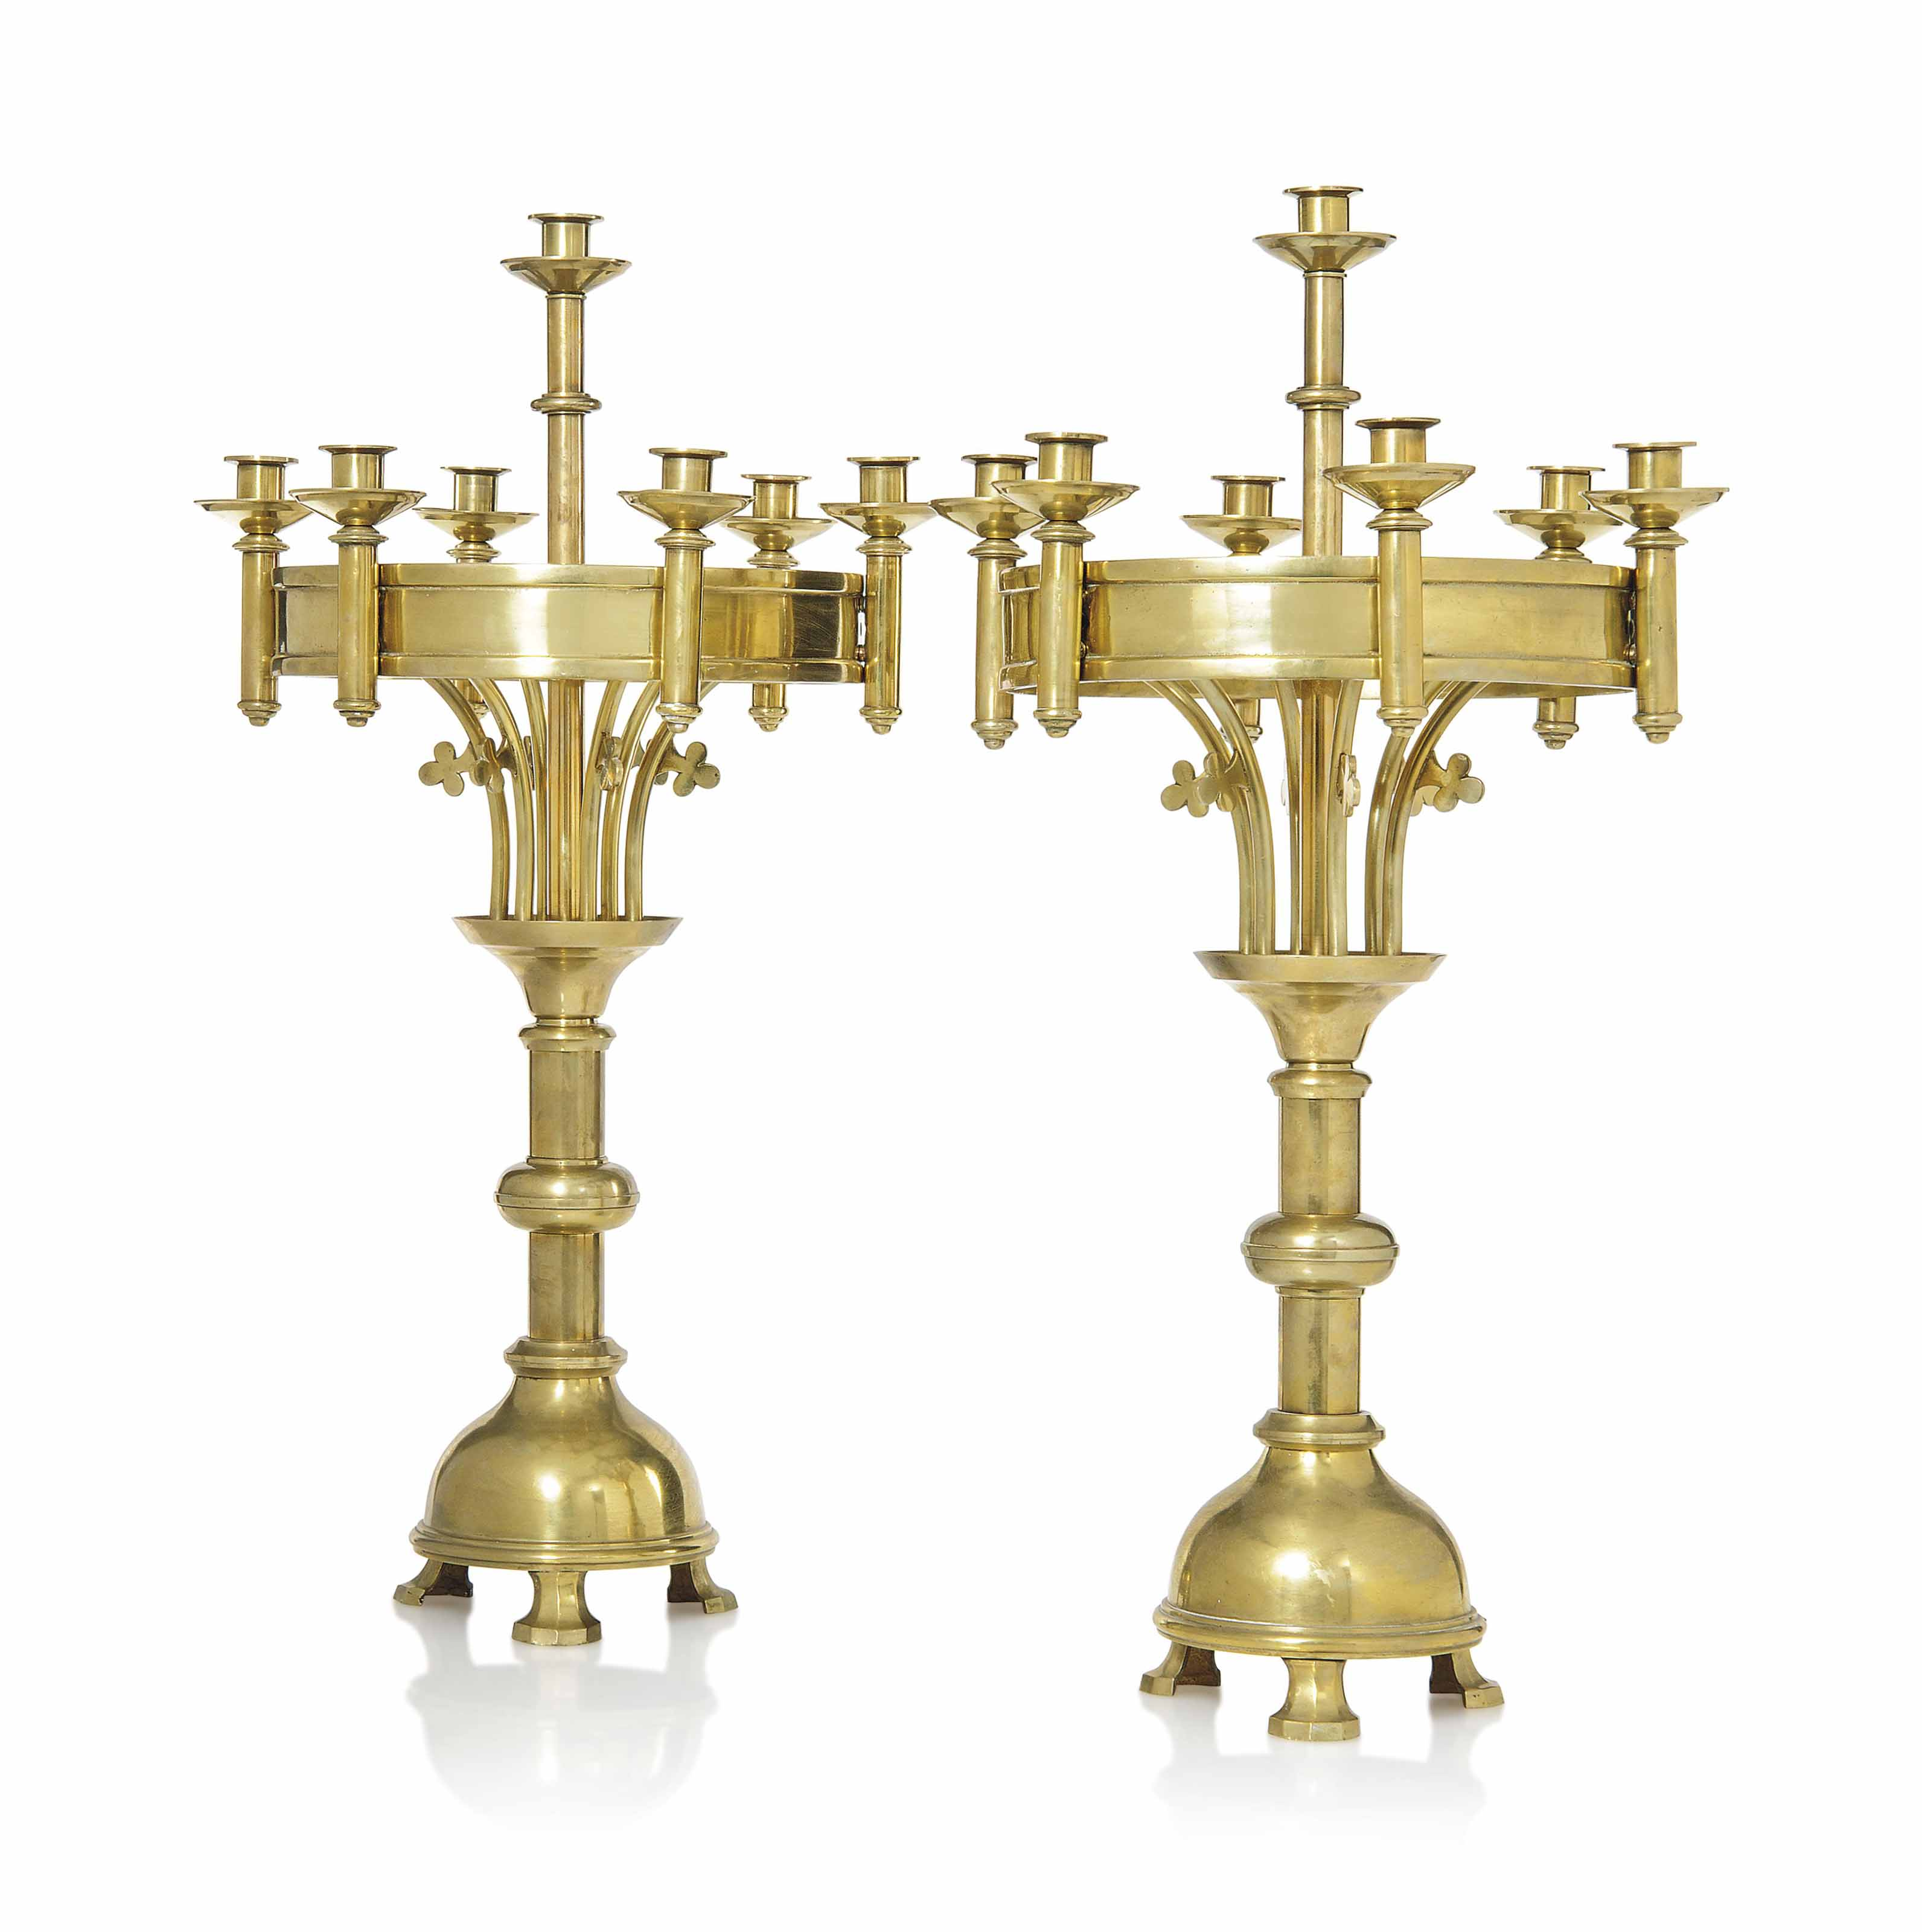 A LARGE PAIR OF GOTHIC REVIVAL BRASS CANDELABRA